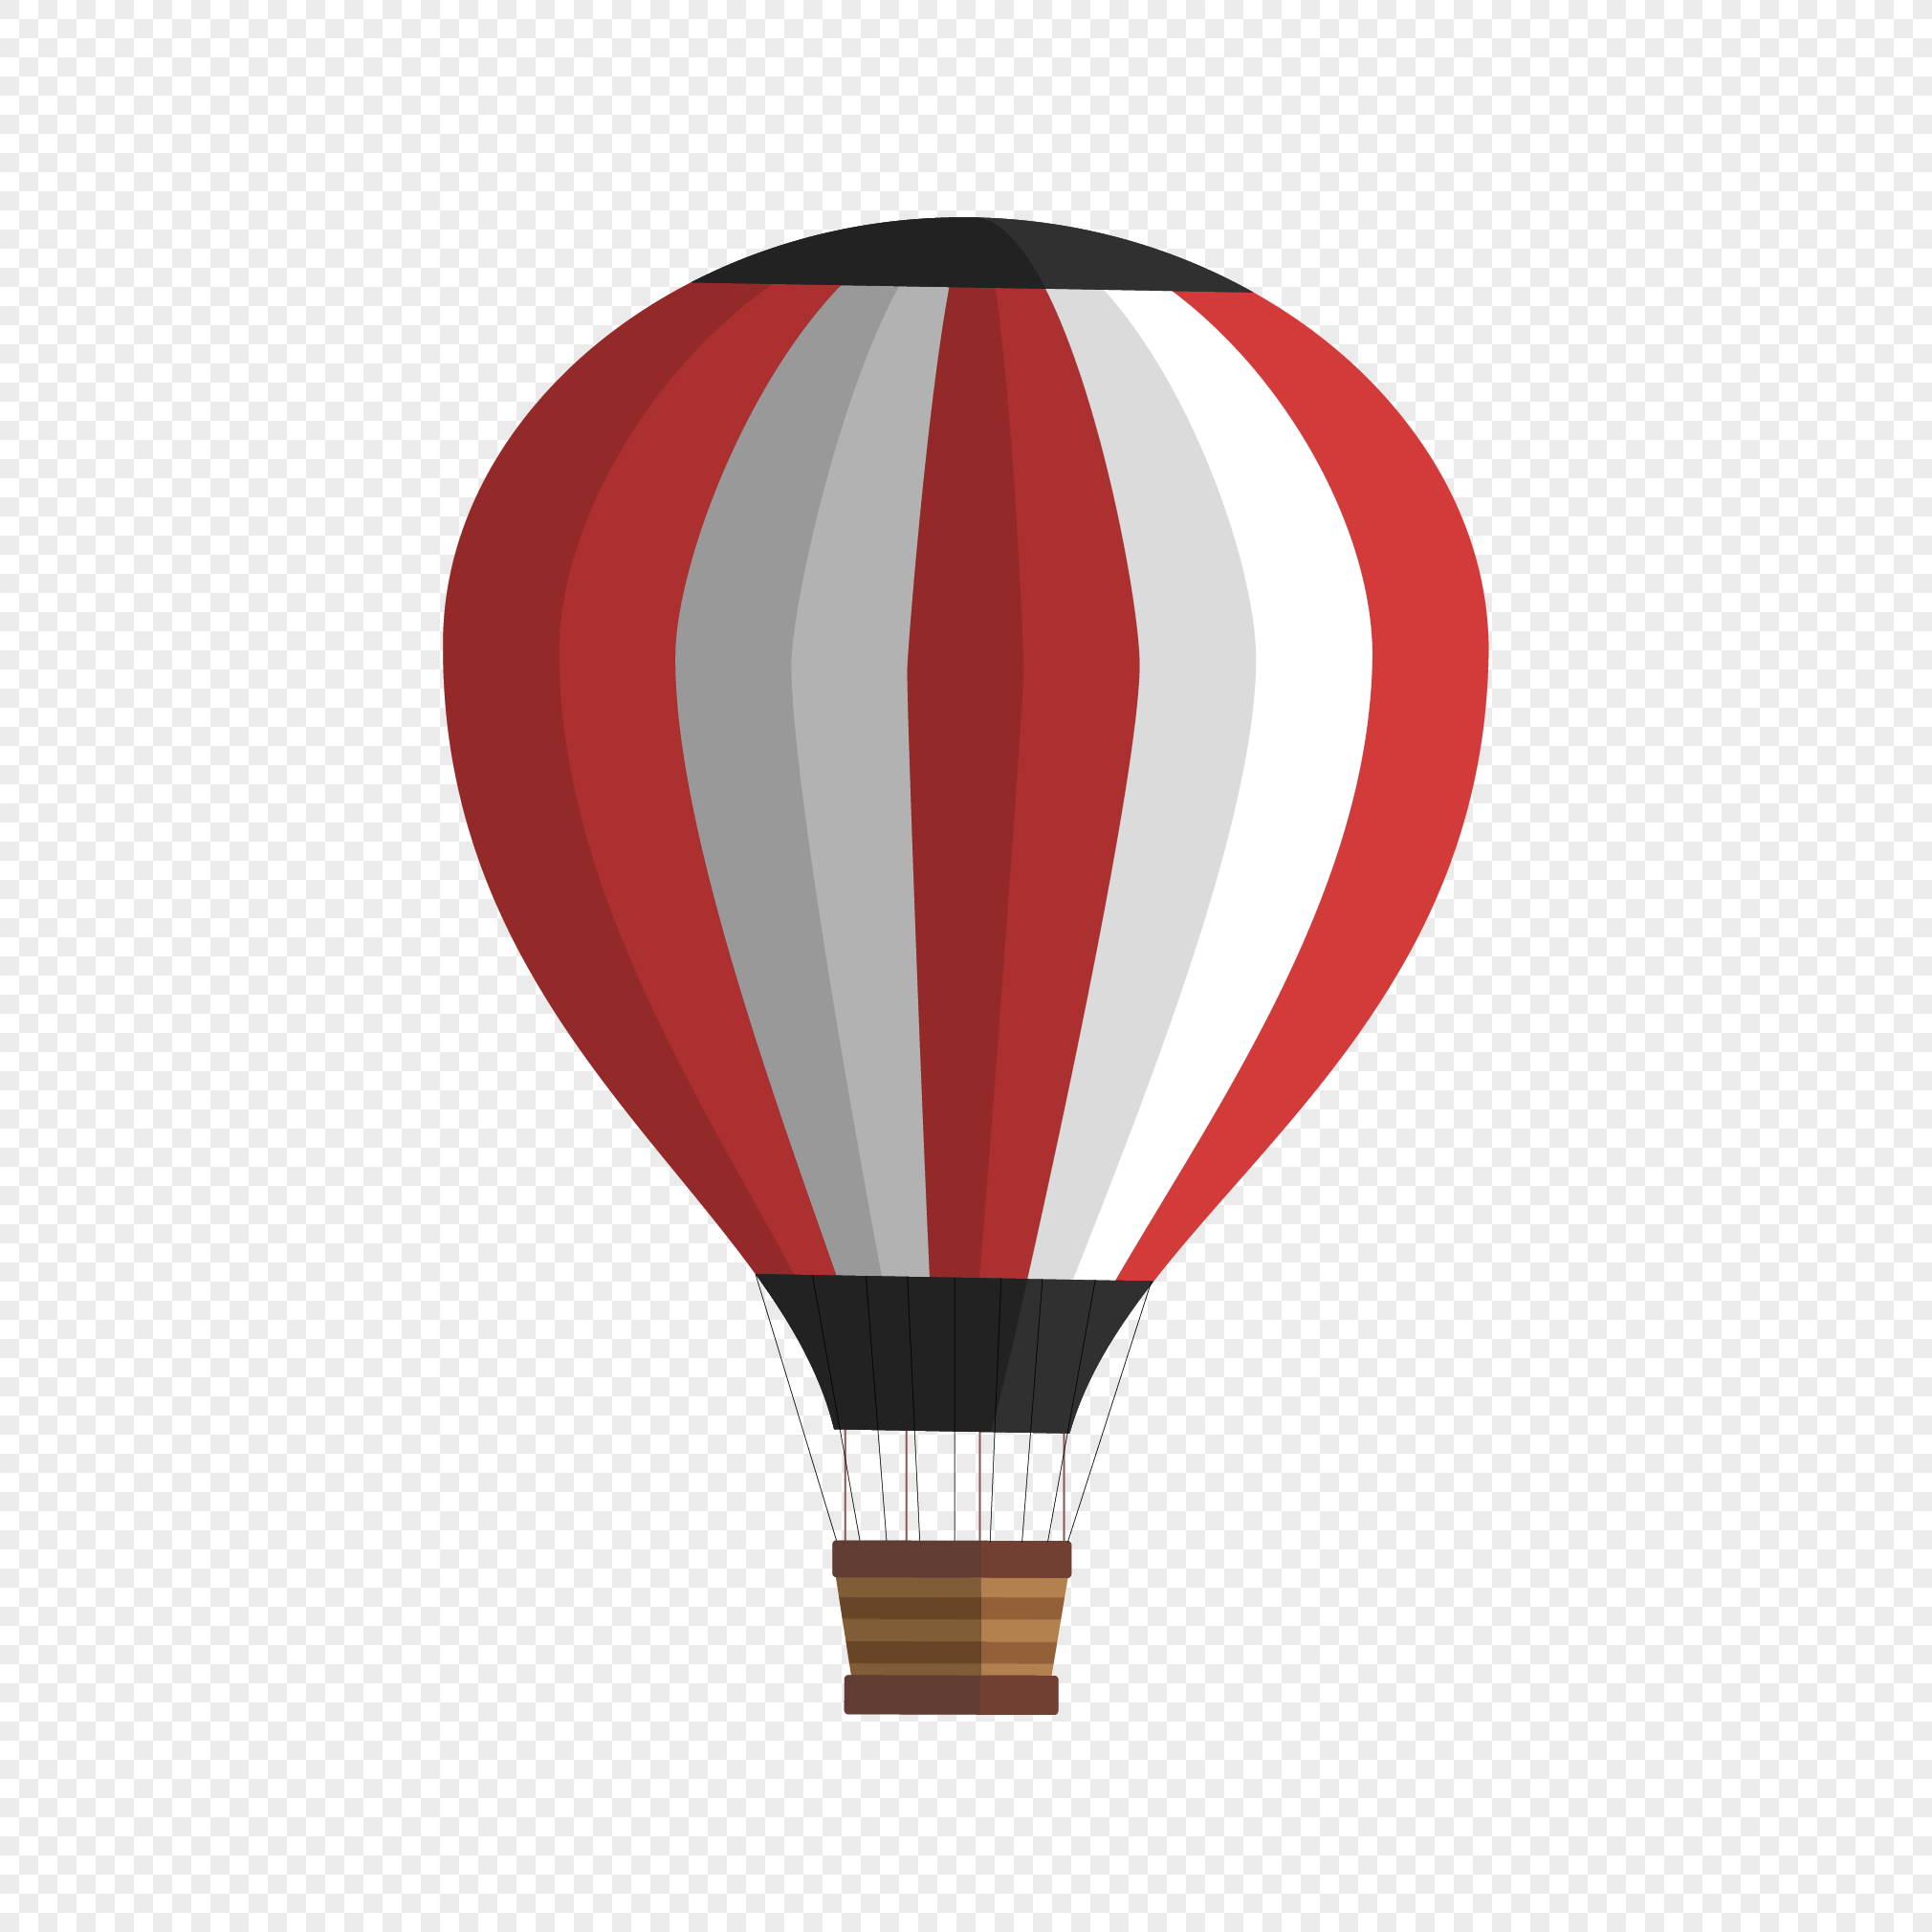 2020x2020 Hydrogen Balloon Vector Png Image Picture Free Download